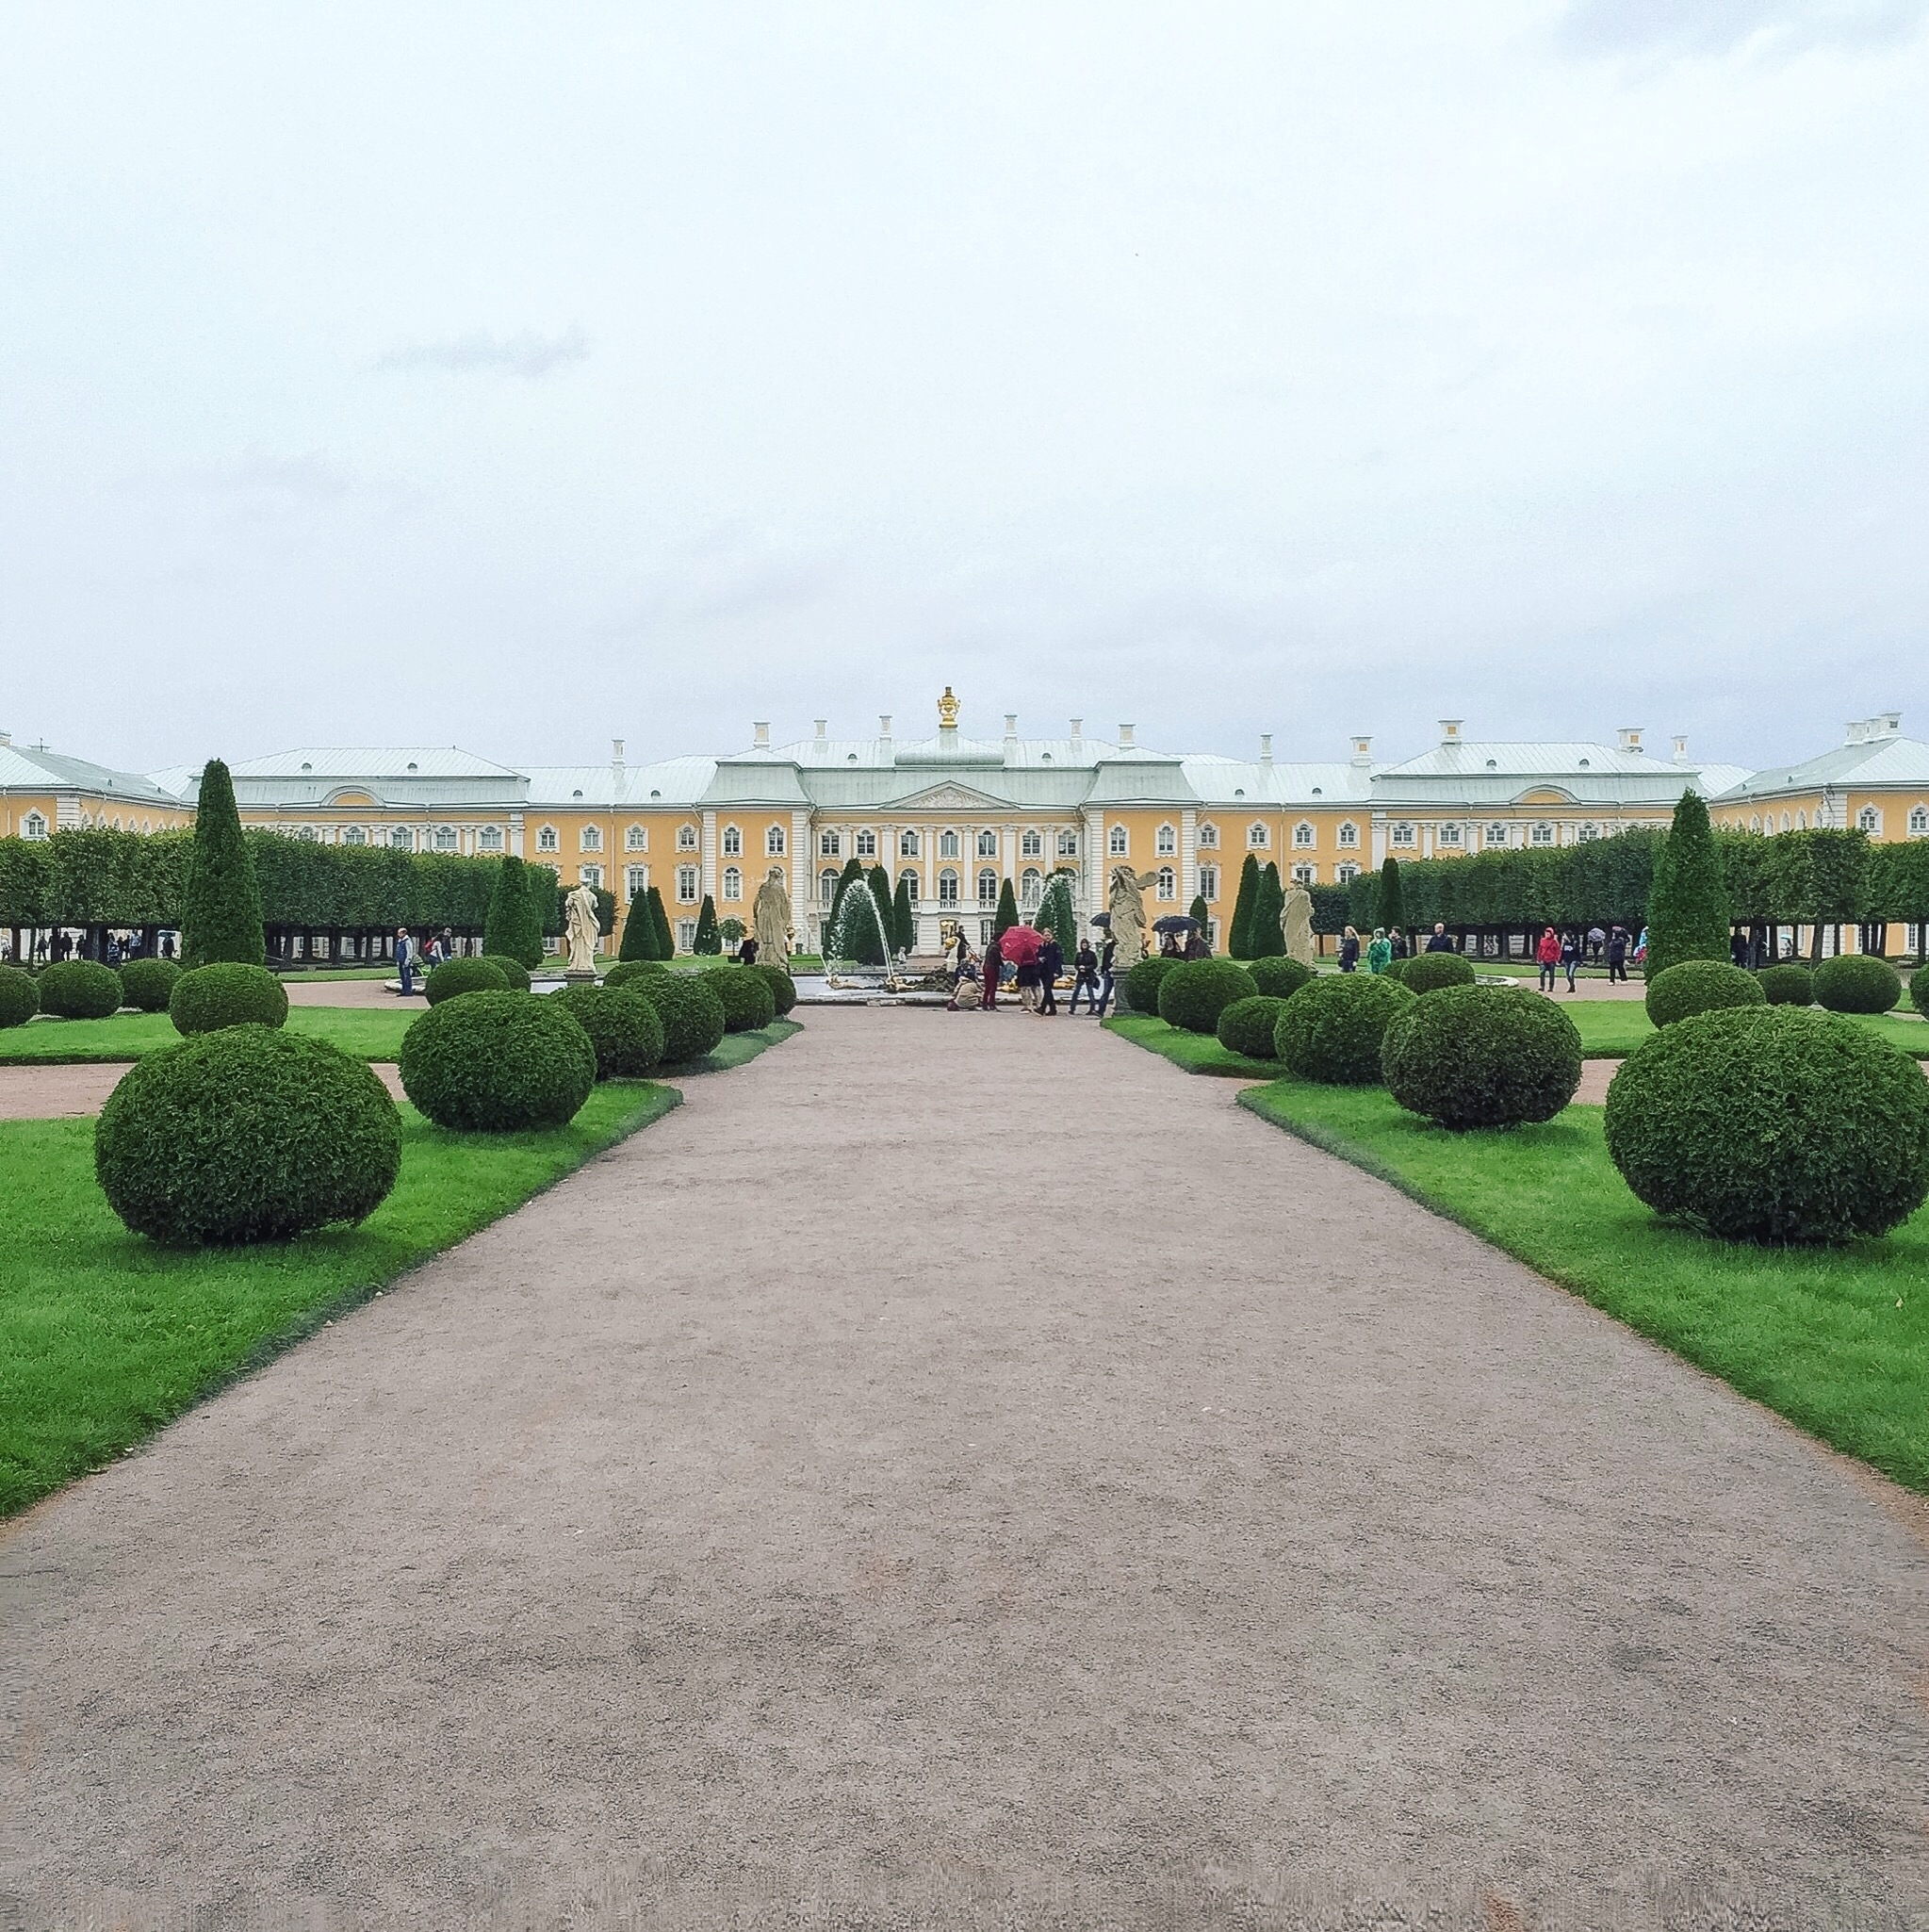 Saint Petersburg Petergof Summer Palace